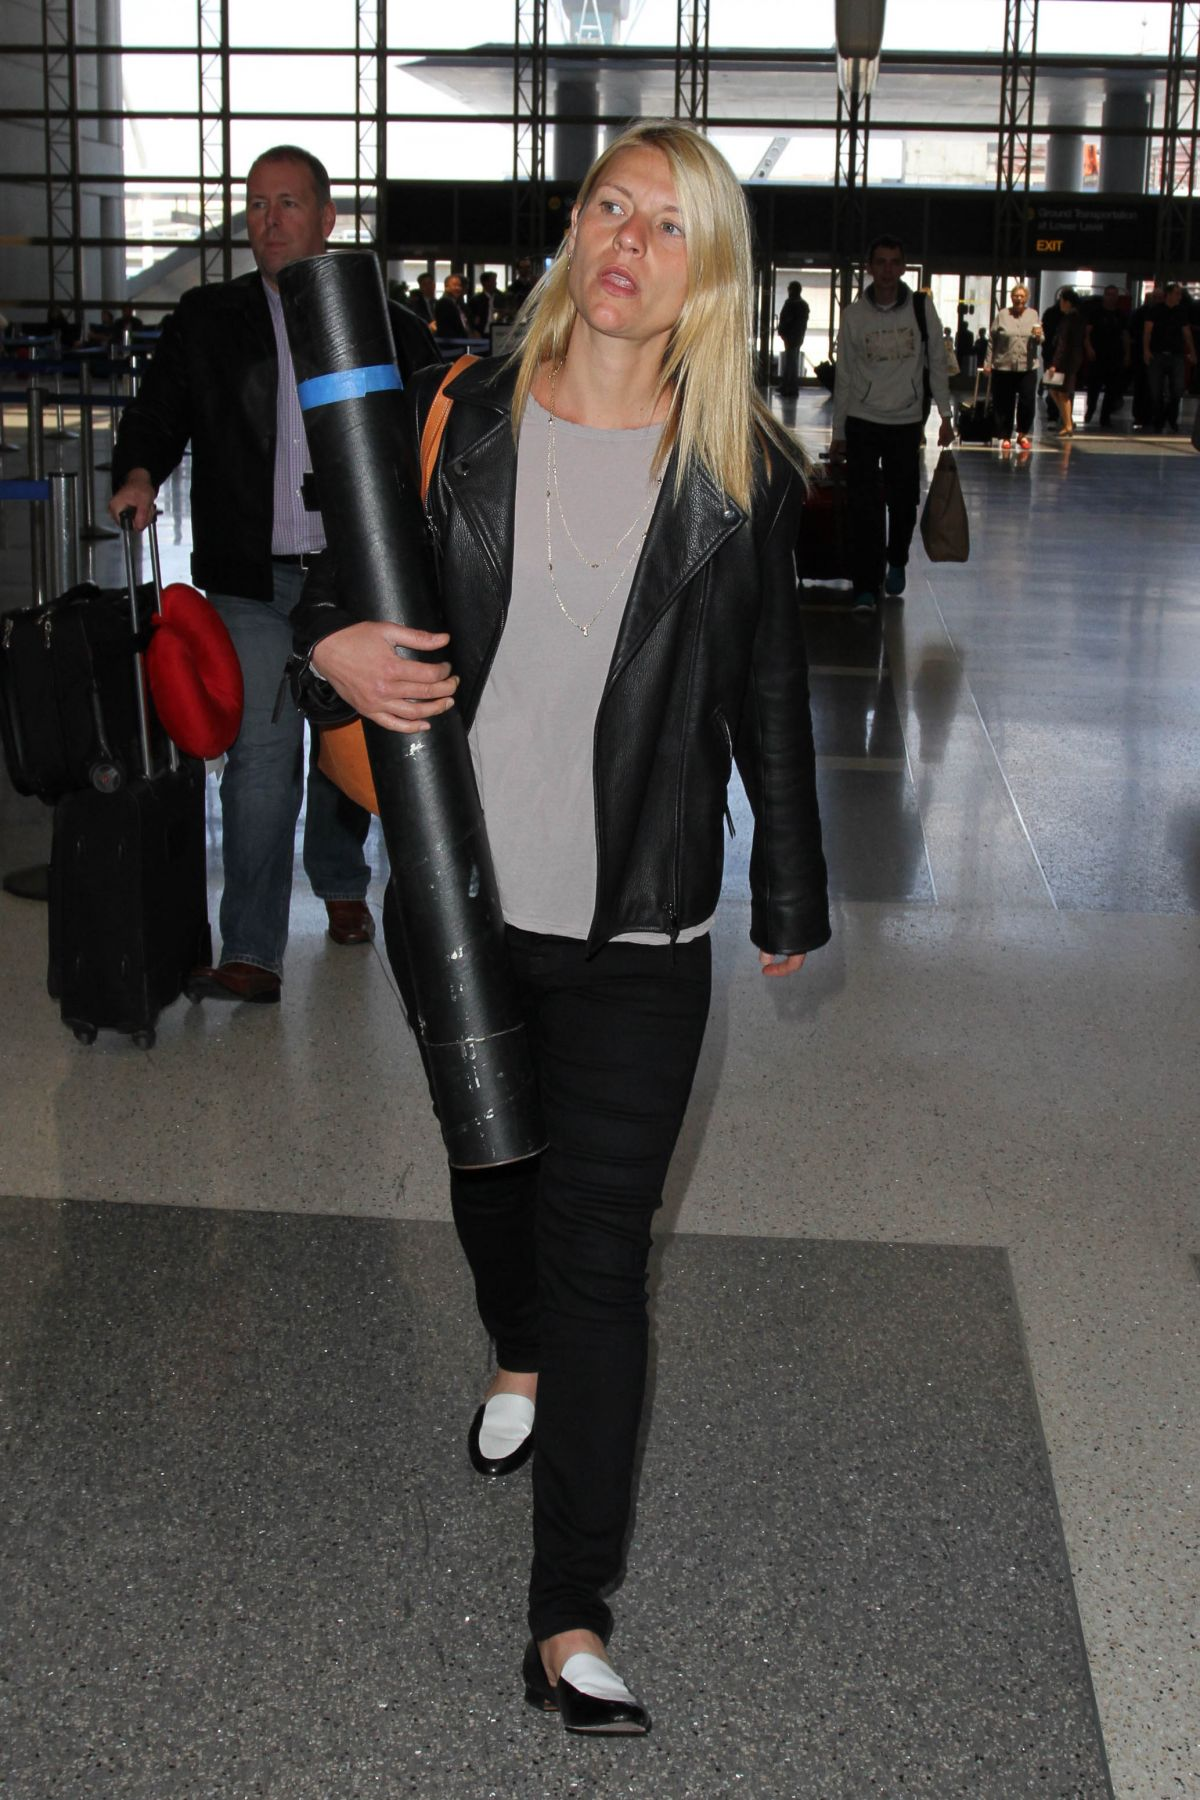 CLAIRE DANES Arrives at LAX Airport in Los Angeles 05/21/2015